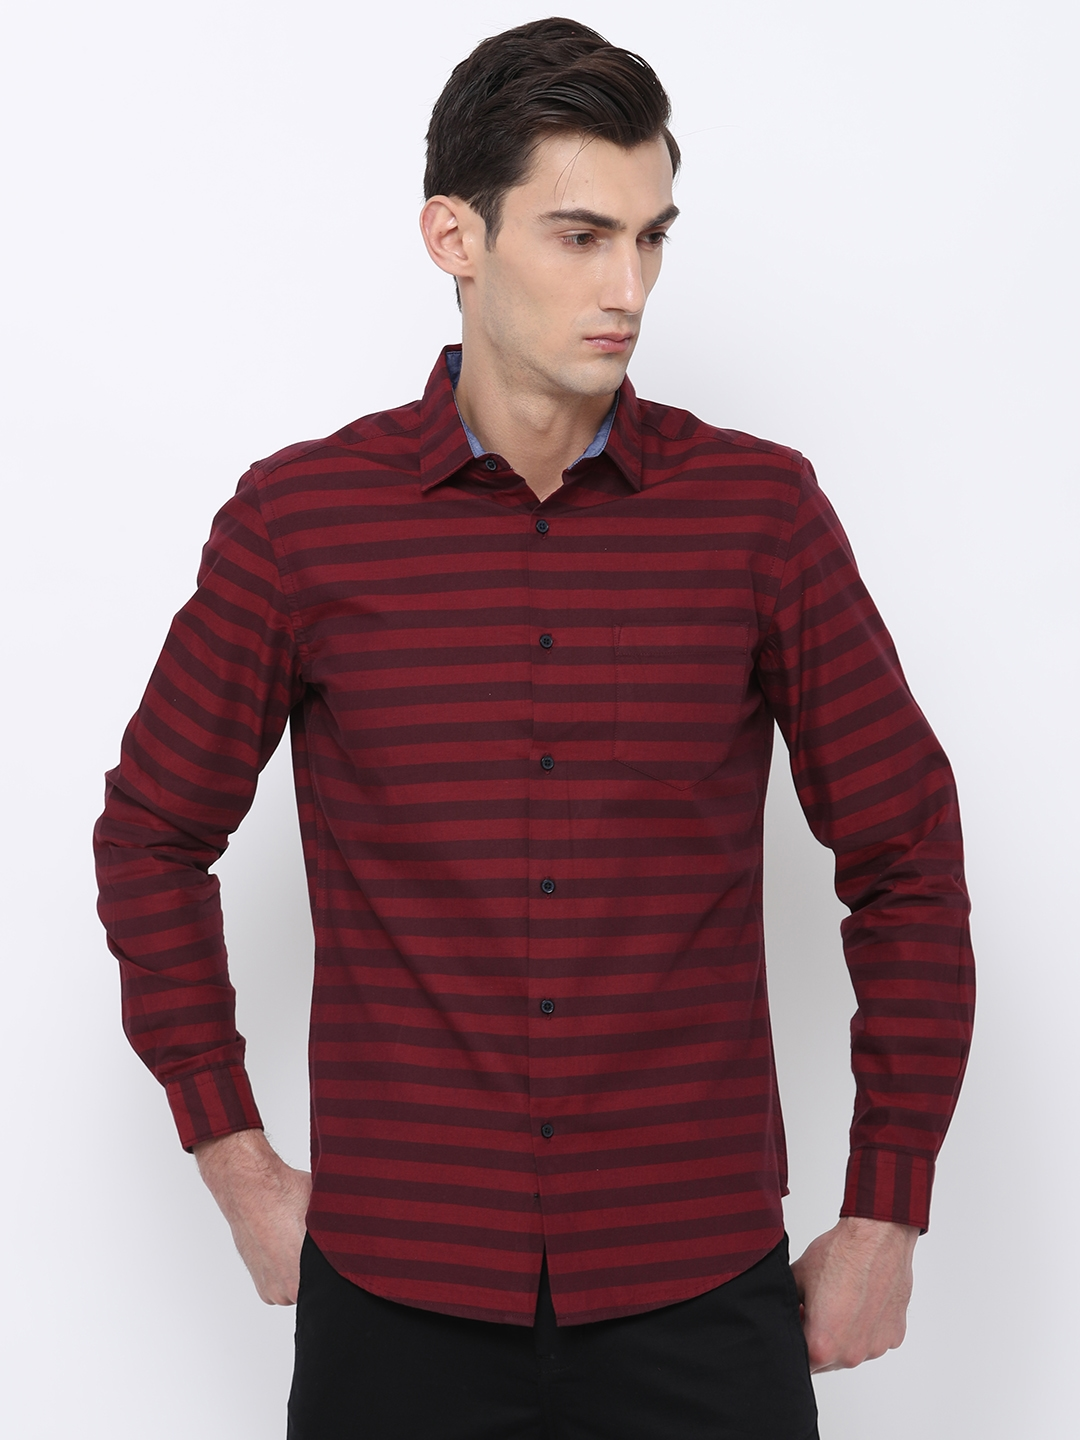 476a2a84e0a0 Buy Black Coffee Men Red   Maroon Slim Fit Striped Casual Shirt ...